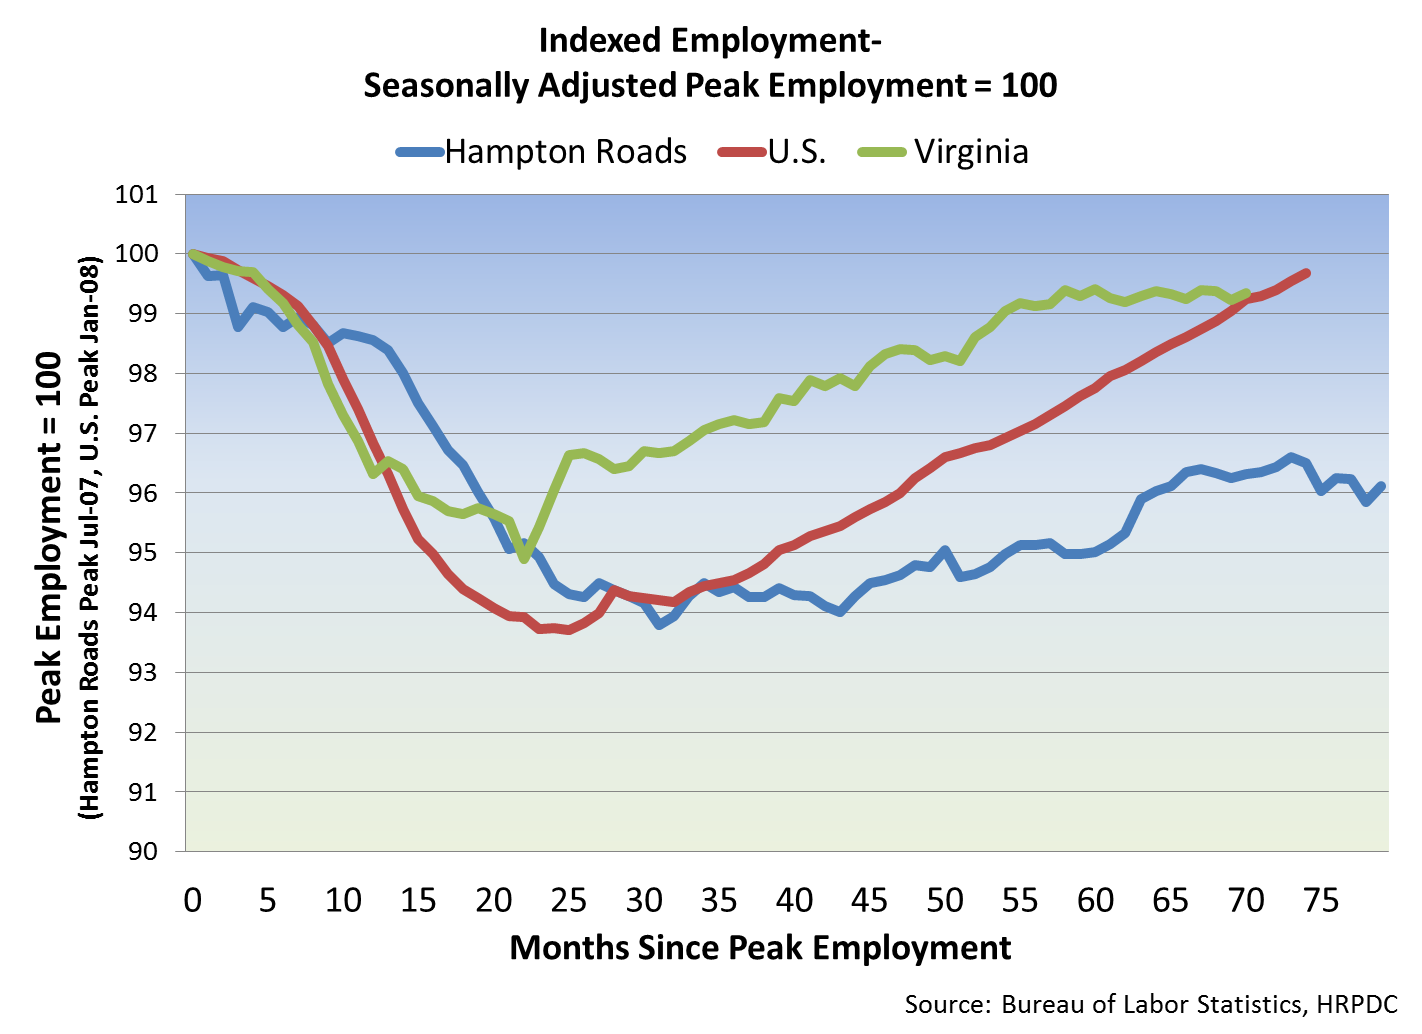 Indexed Employment: Seasonally Adjusted Peak Employment = 100